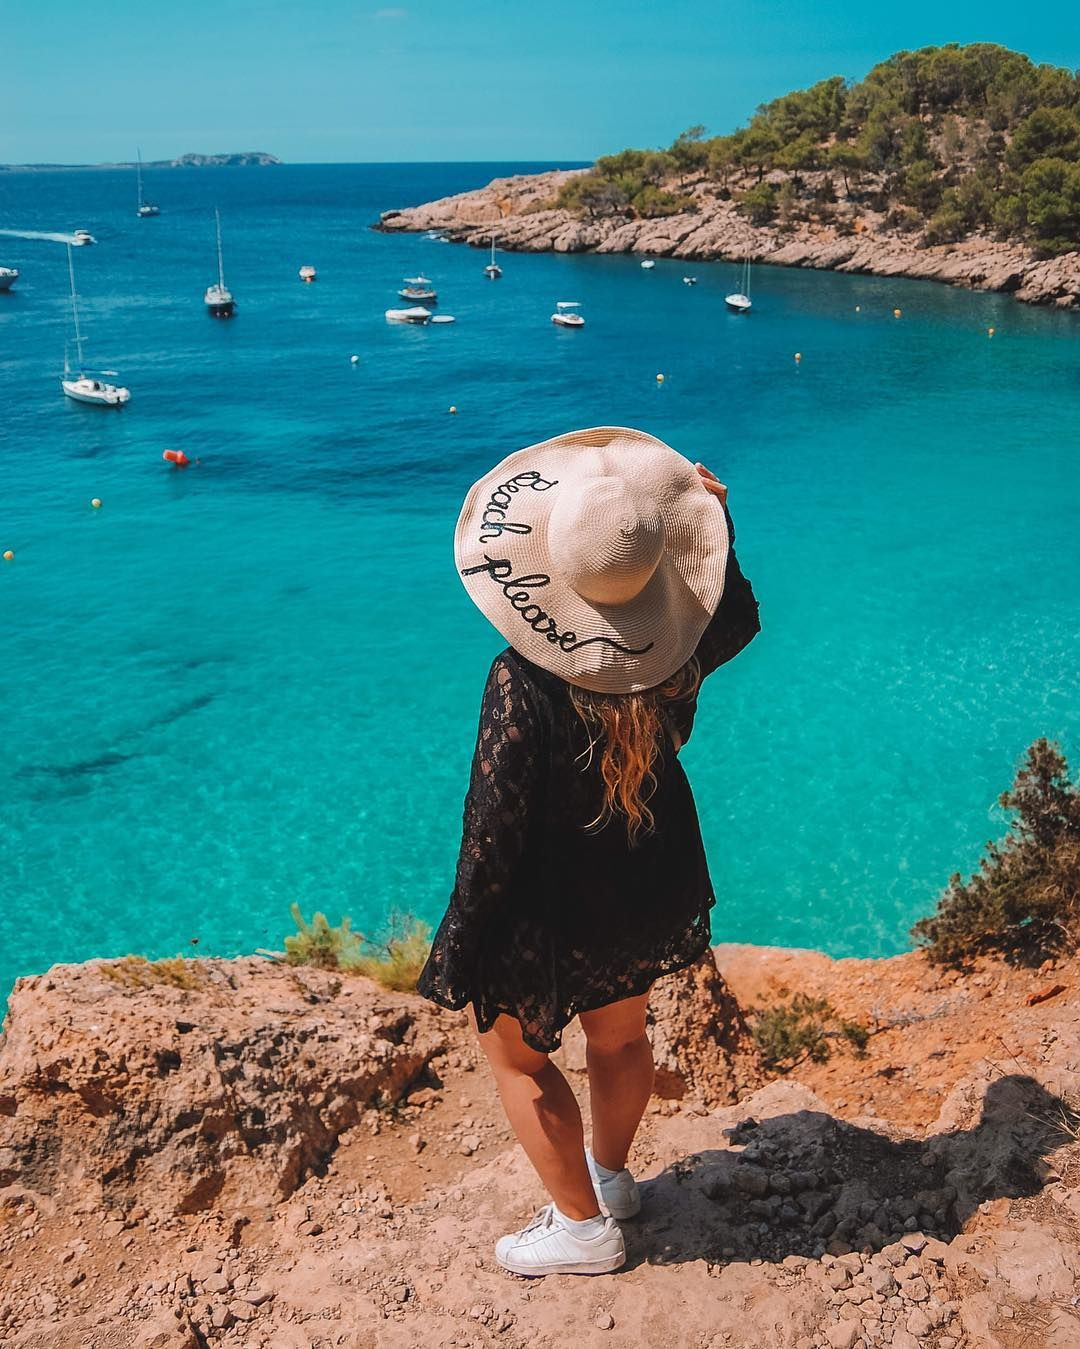 15 Ridiculously Easy Travel Instagram Photo Ideas and